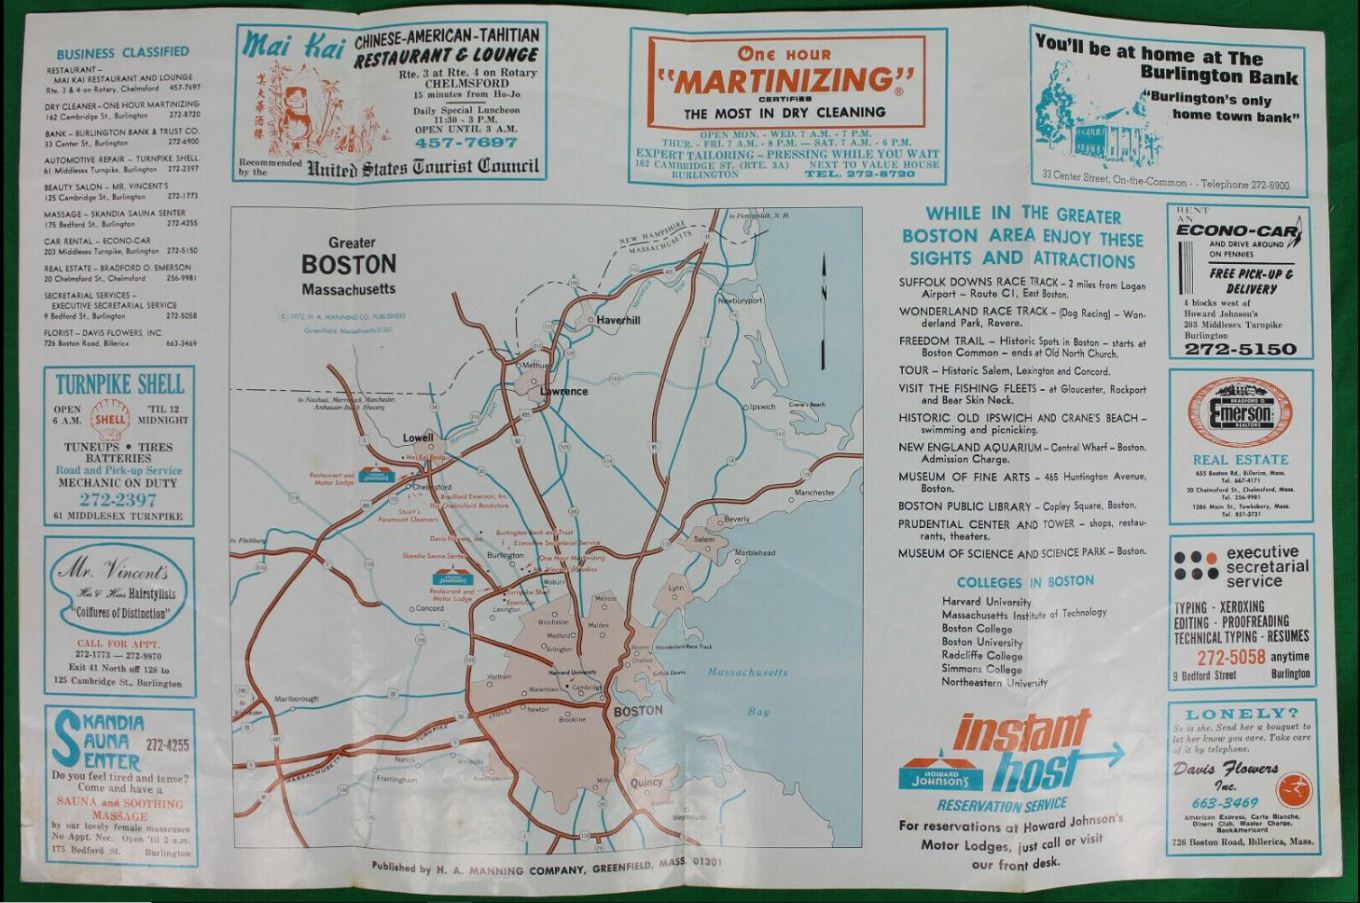 Howard Johnson's Motor Lodge Burlington MA brochure 2